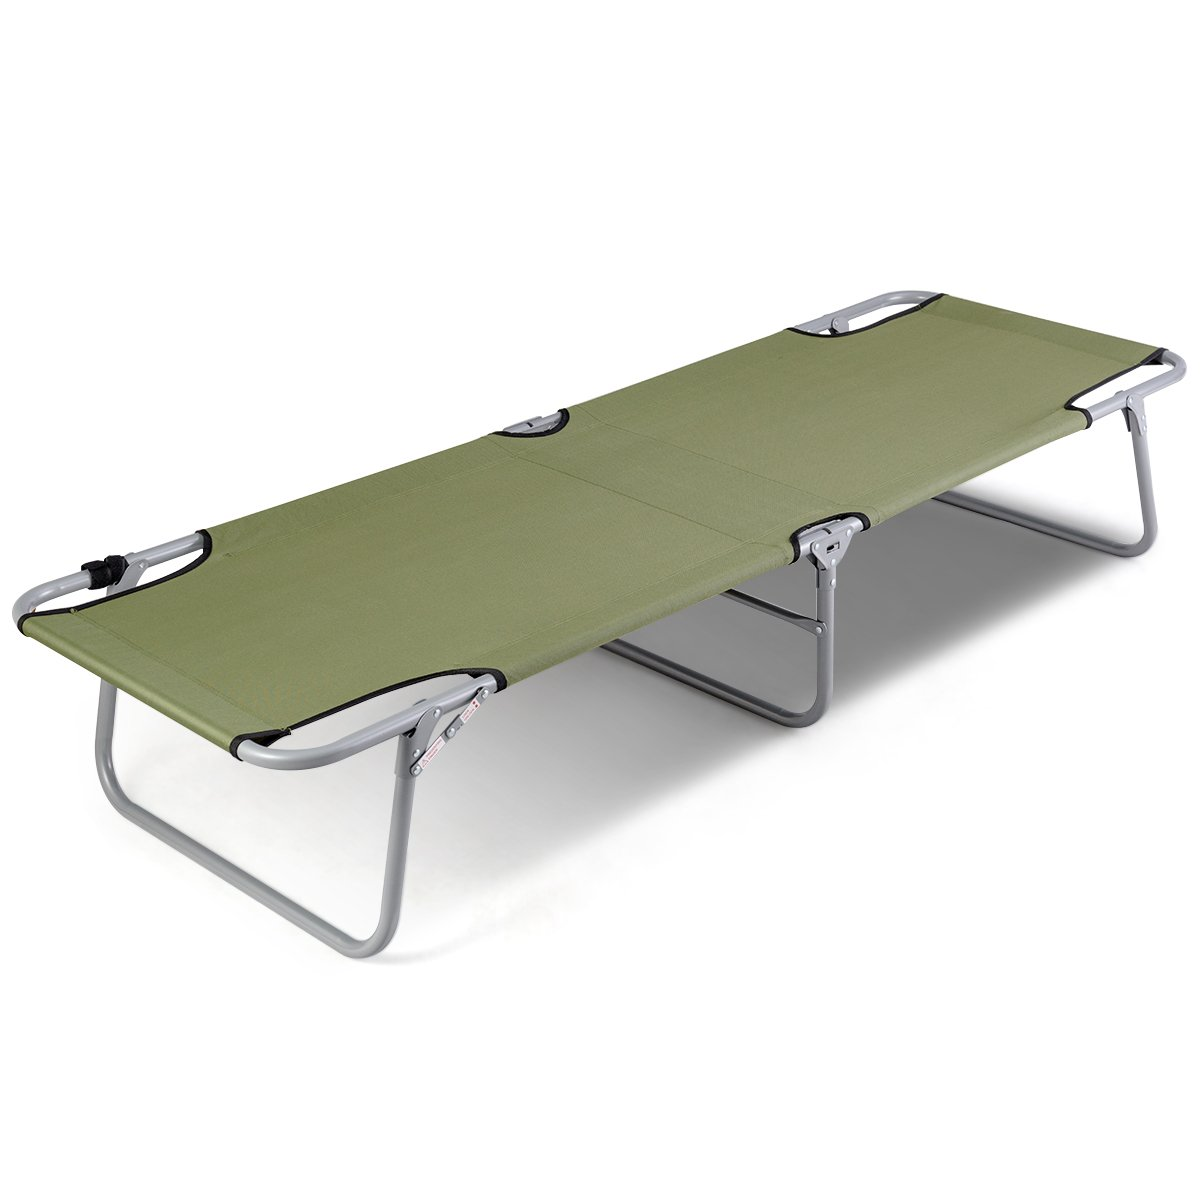 Goplus Foldable Camping Bed Outdoor Portable Military Cot for Travel Mountaineering Base Camp Hiking